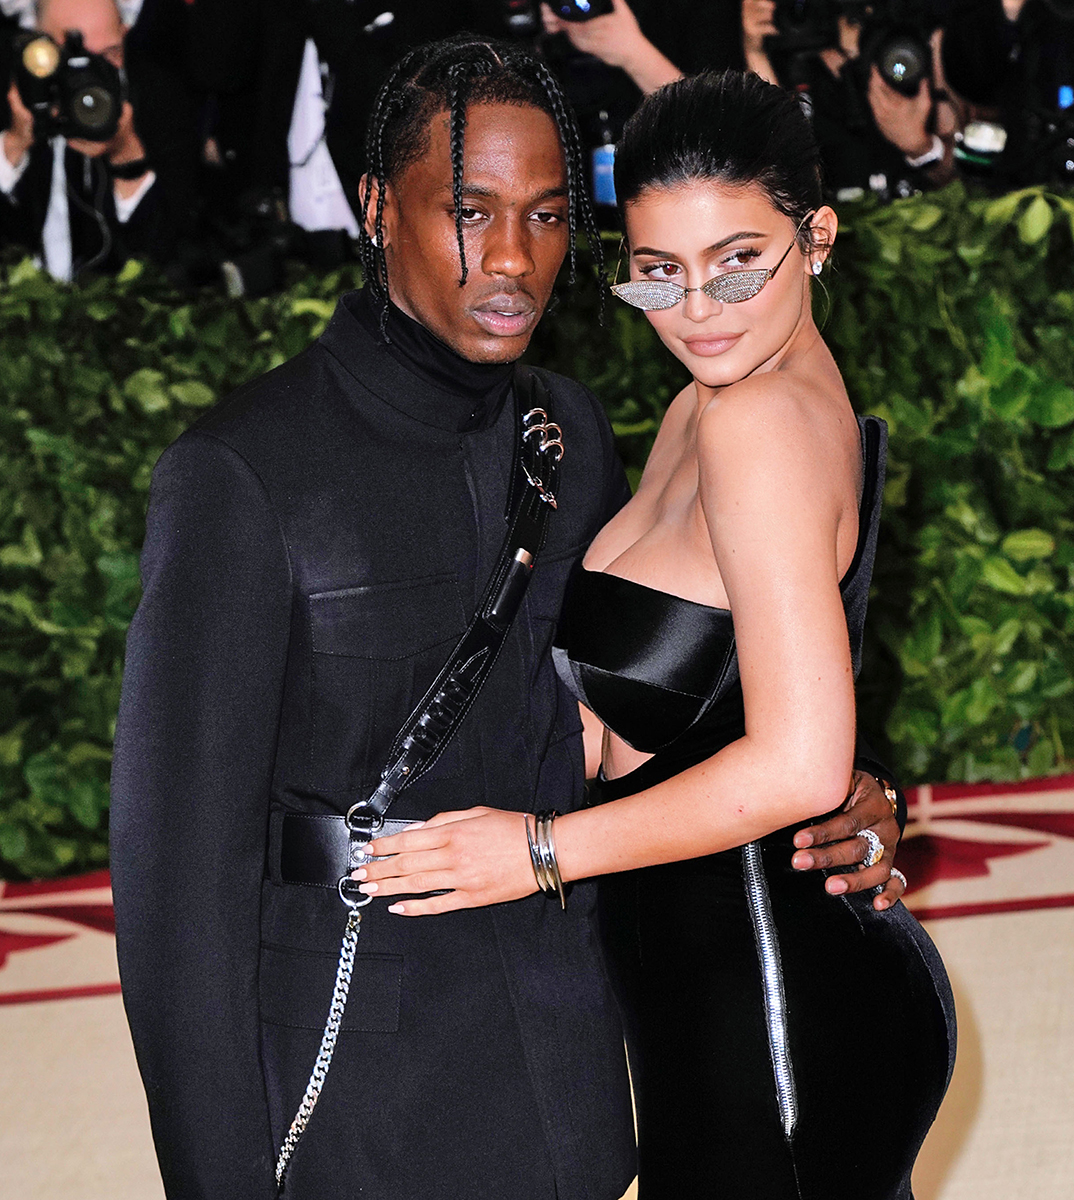 f94527bd6b6f When Did Kylie Jenner and Travis Scott Start Dating? A Timeline